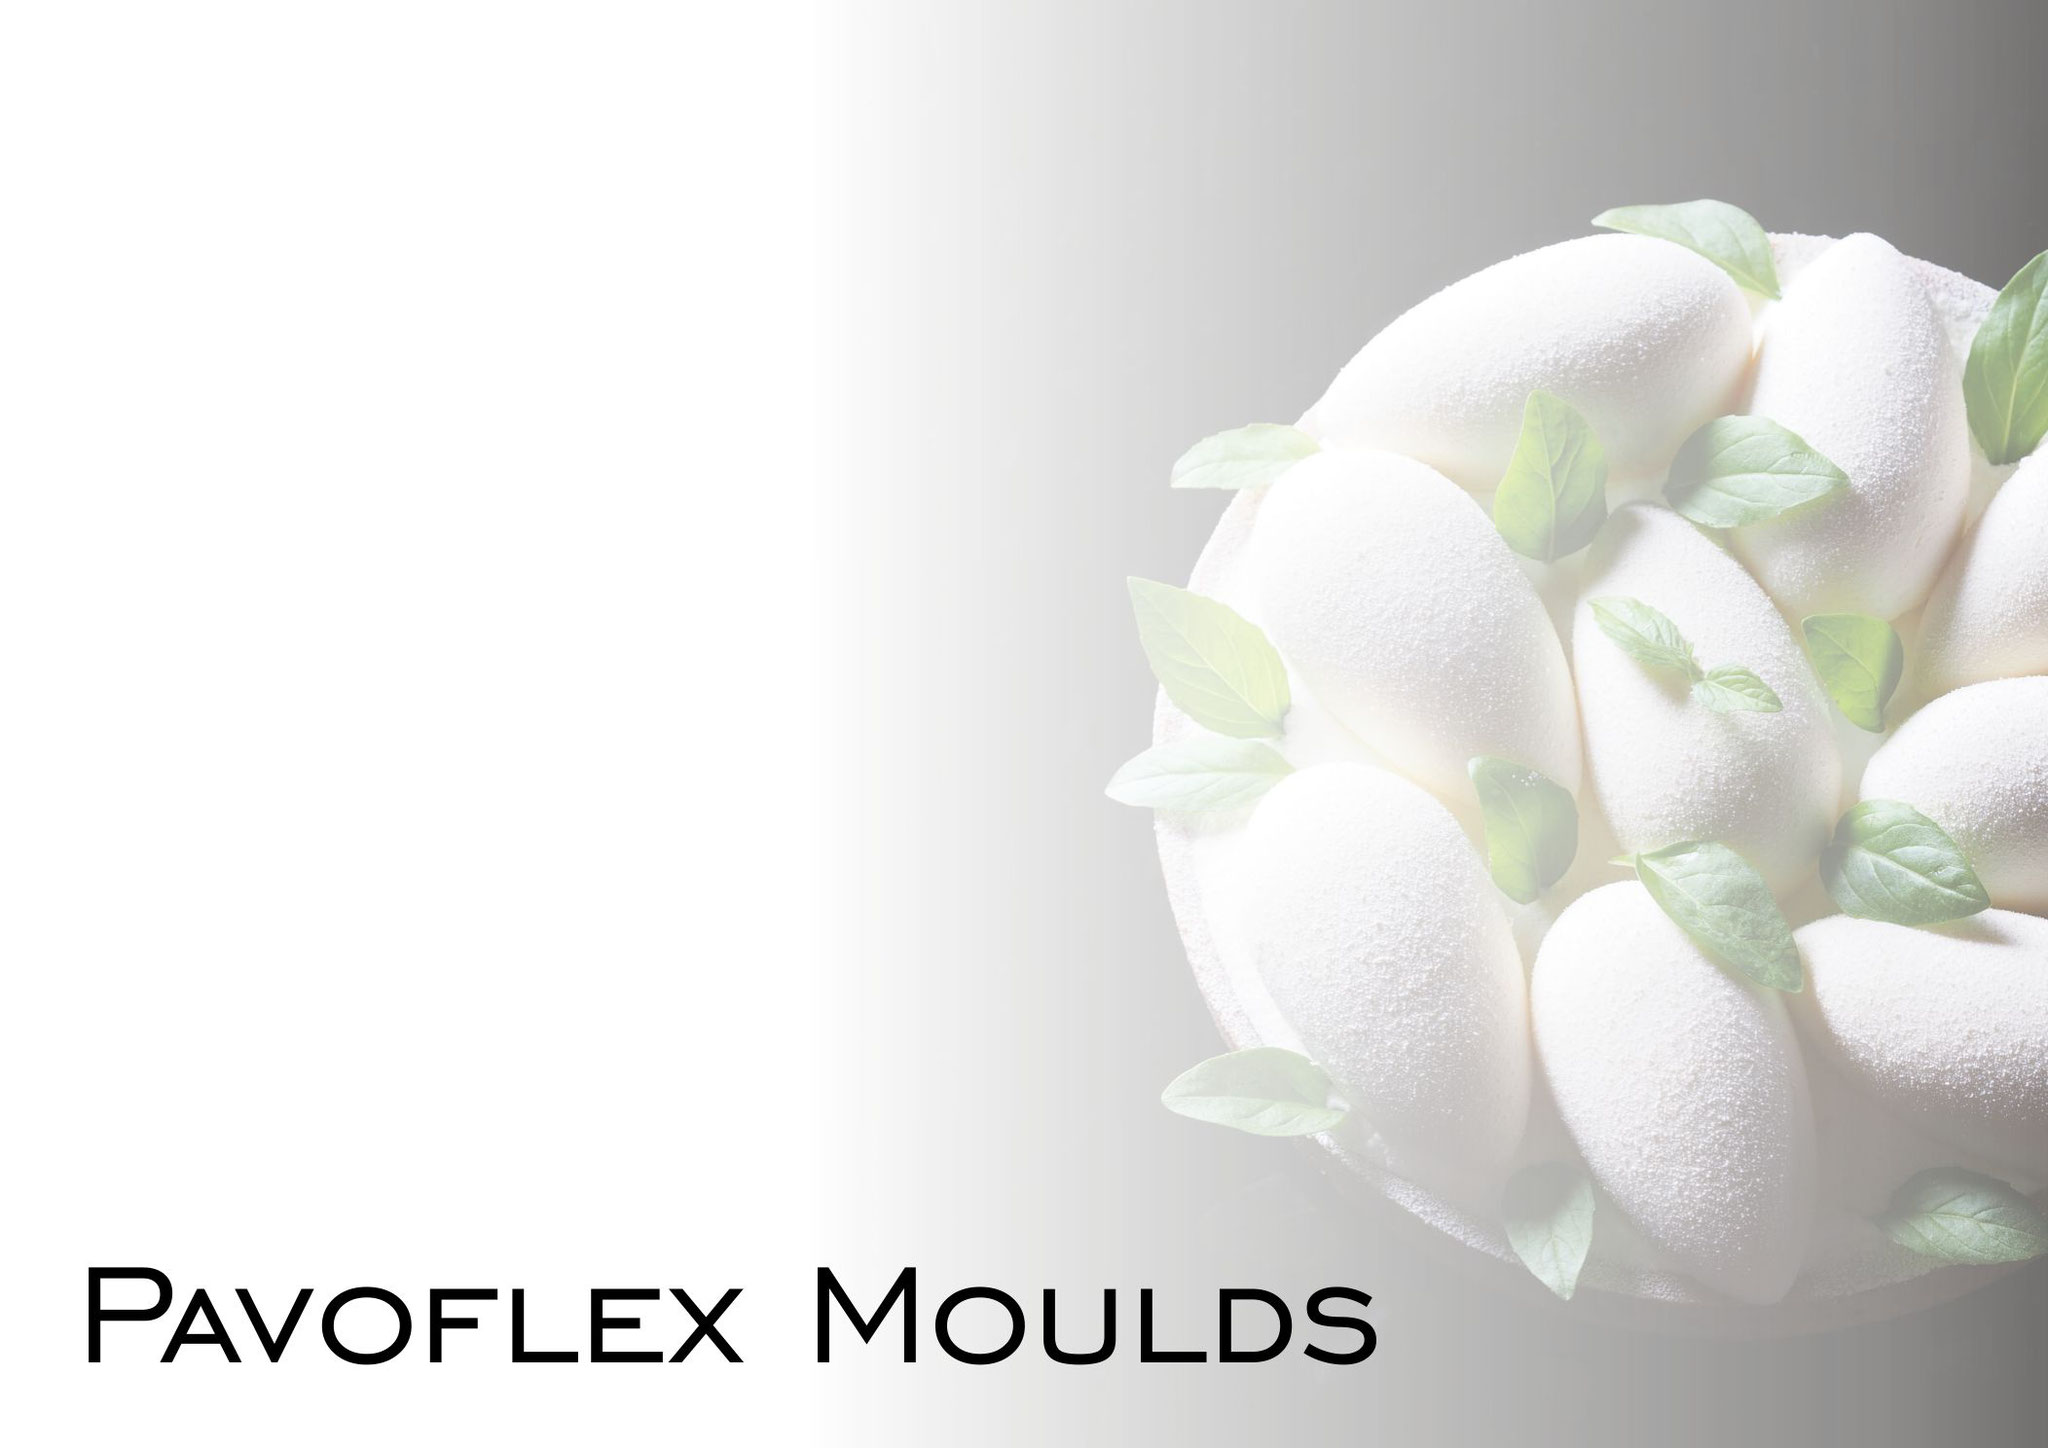 Pavoflex Moulds